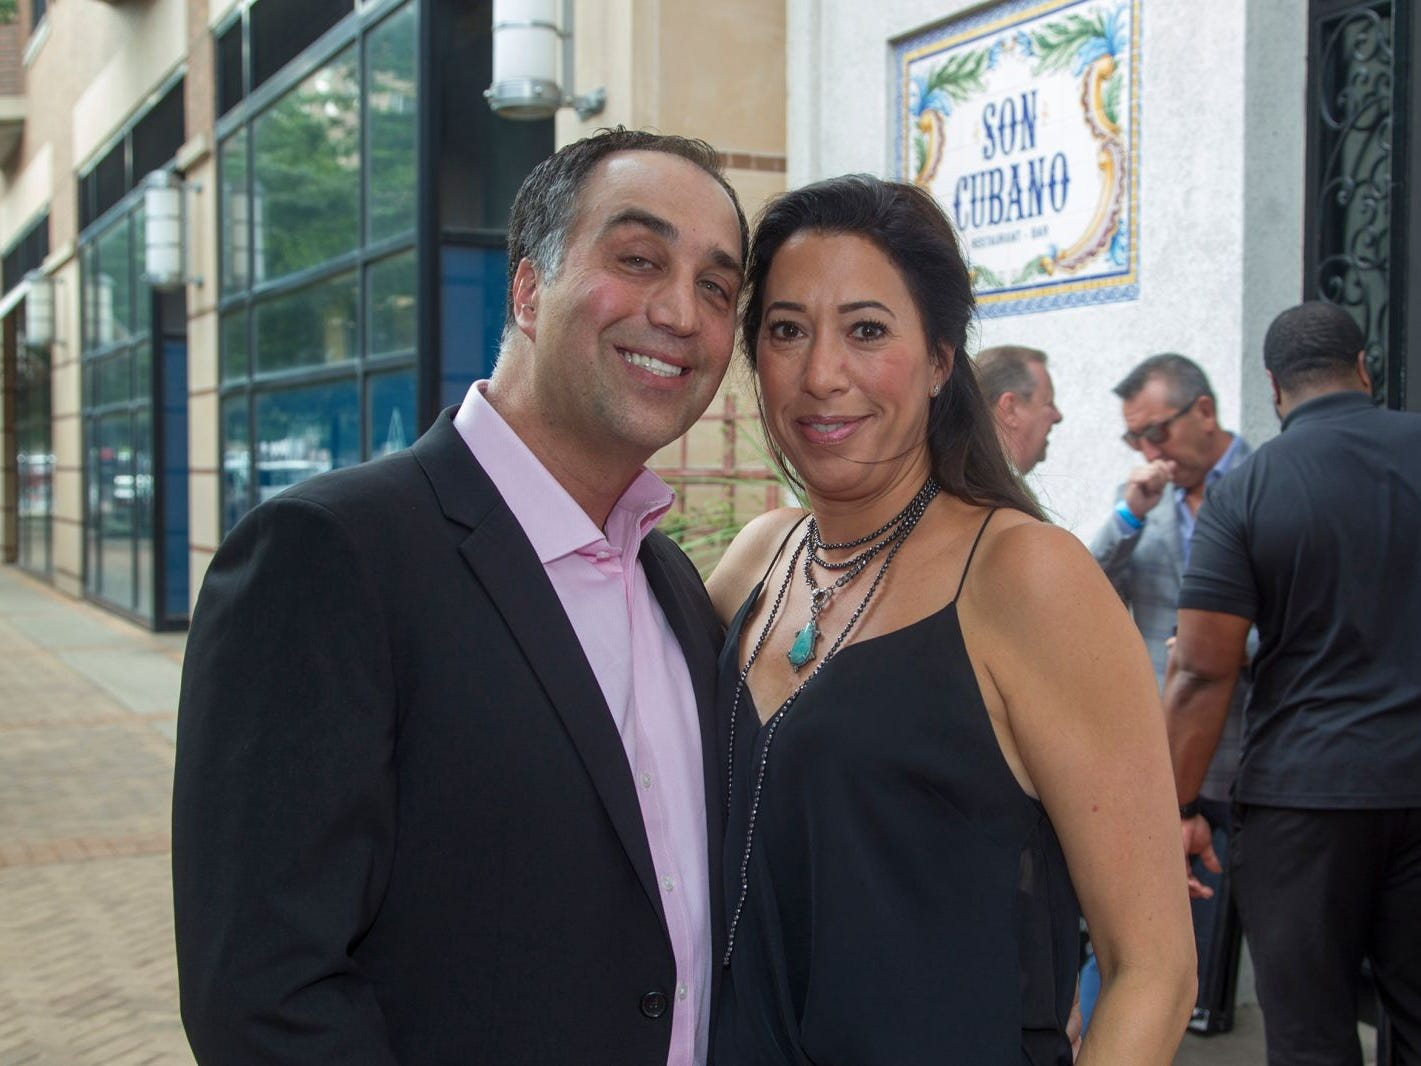 Dr. Michael Farber and Jennifer Farber. Summer Samba Night benefitting Tackle Kids Cancer hosted by Cara Robles, Luis Robles (NY Red Bulls Goalkeeper), Jennifer Farber, and Dr. Michael Farber at Son Cubano in West New York. 08/08/2018